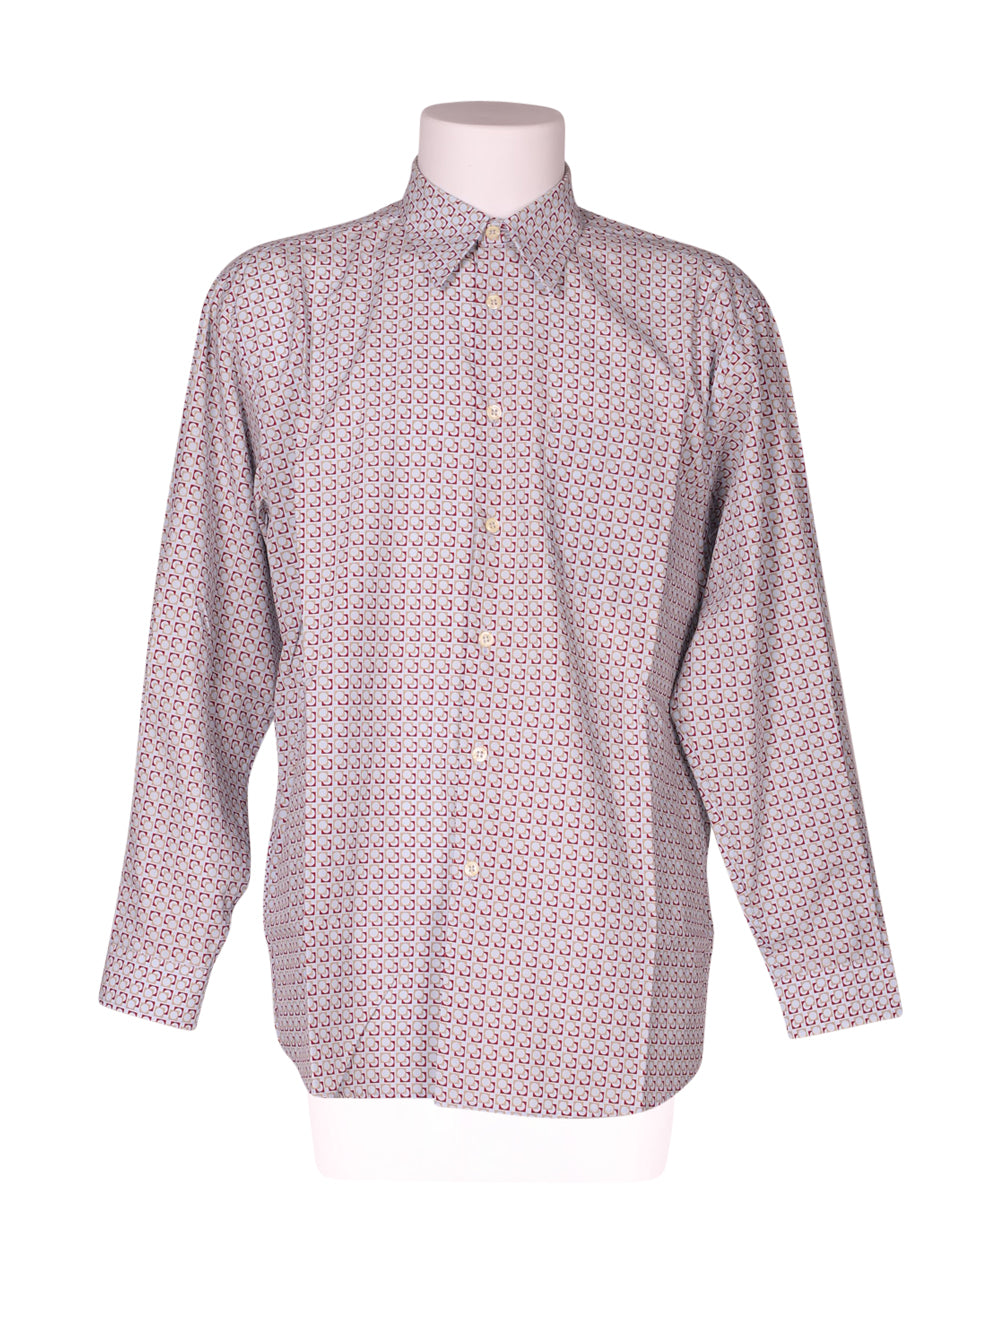 Front photo of Preloved Acrobate Light-blue Man's shirt - size 40/L